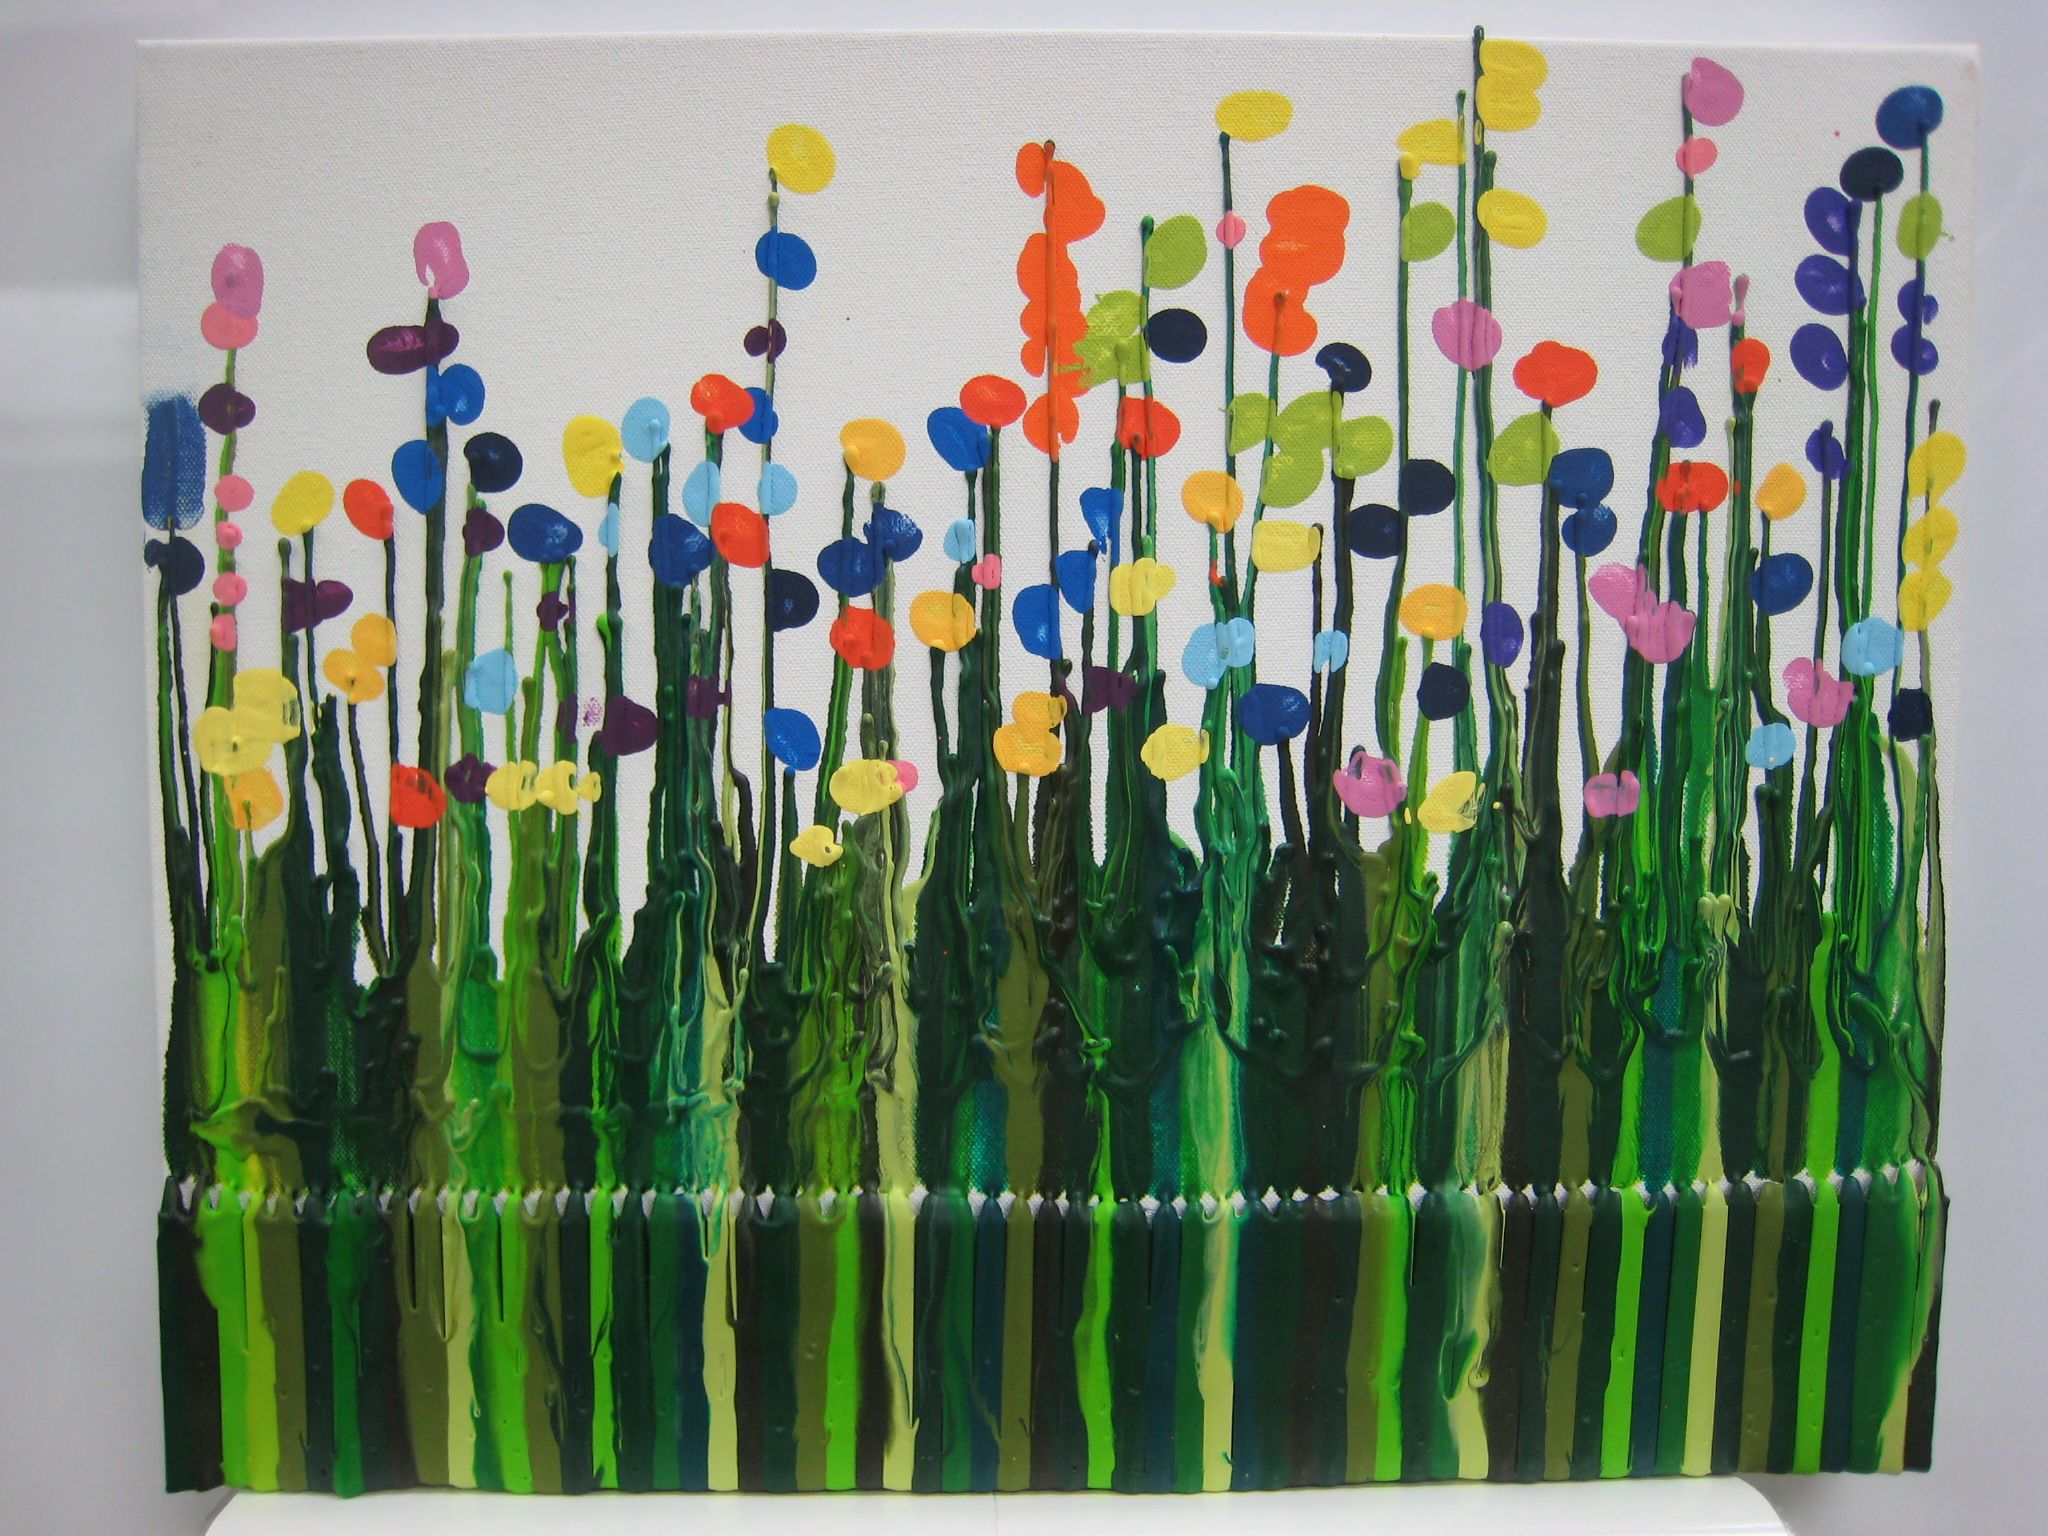 Great Auction Idea Shades Of Green Crayon Melted Onto A